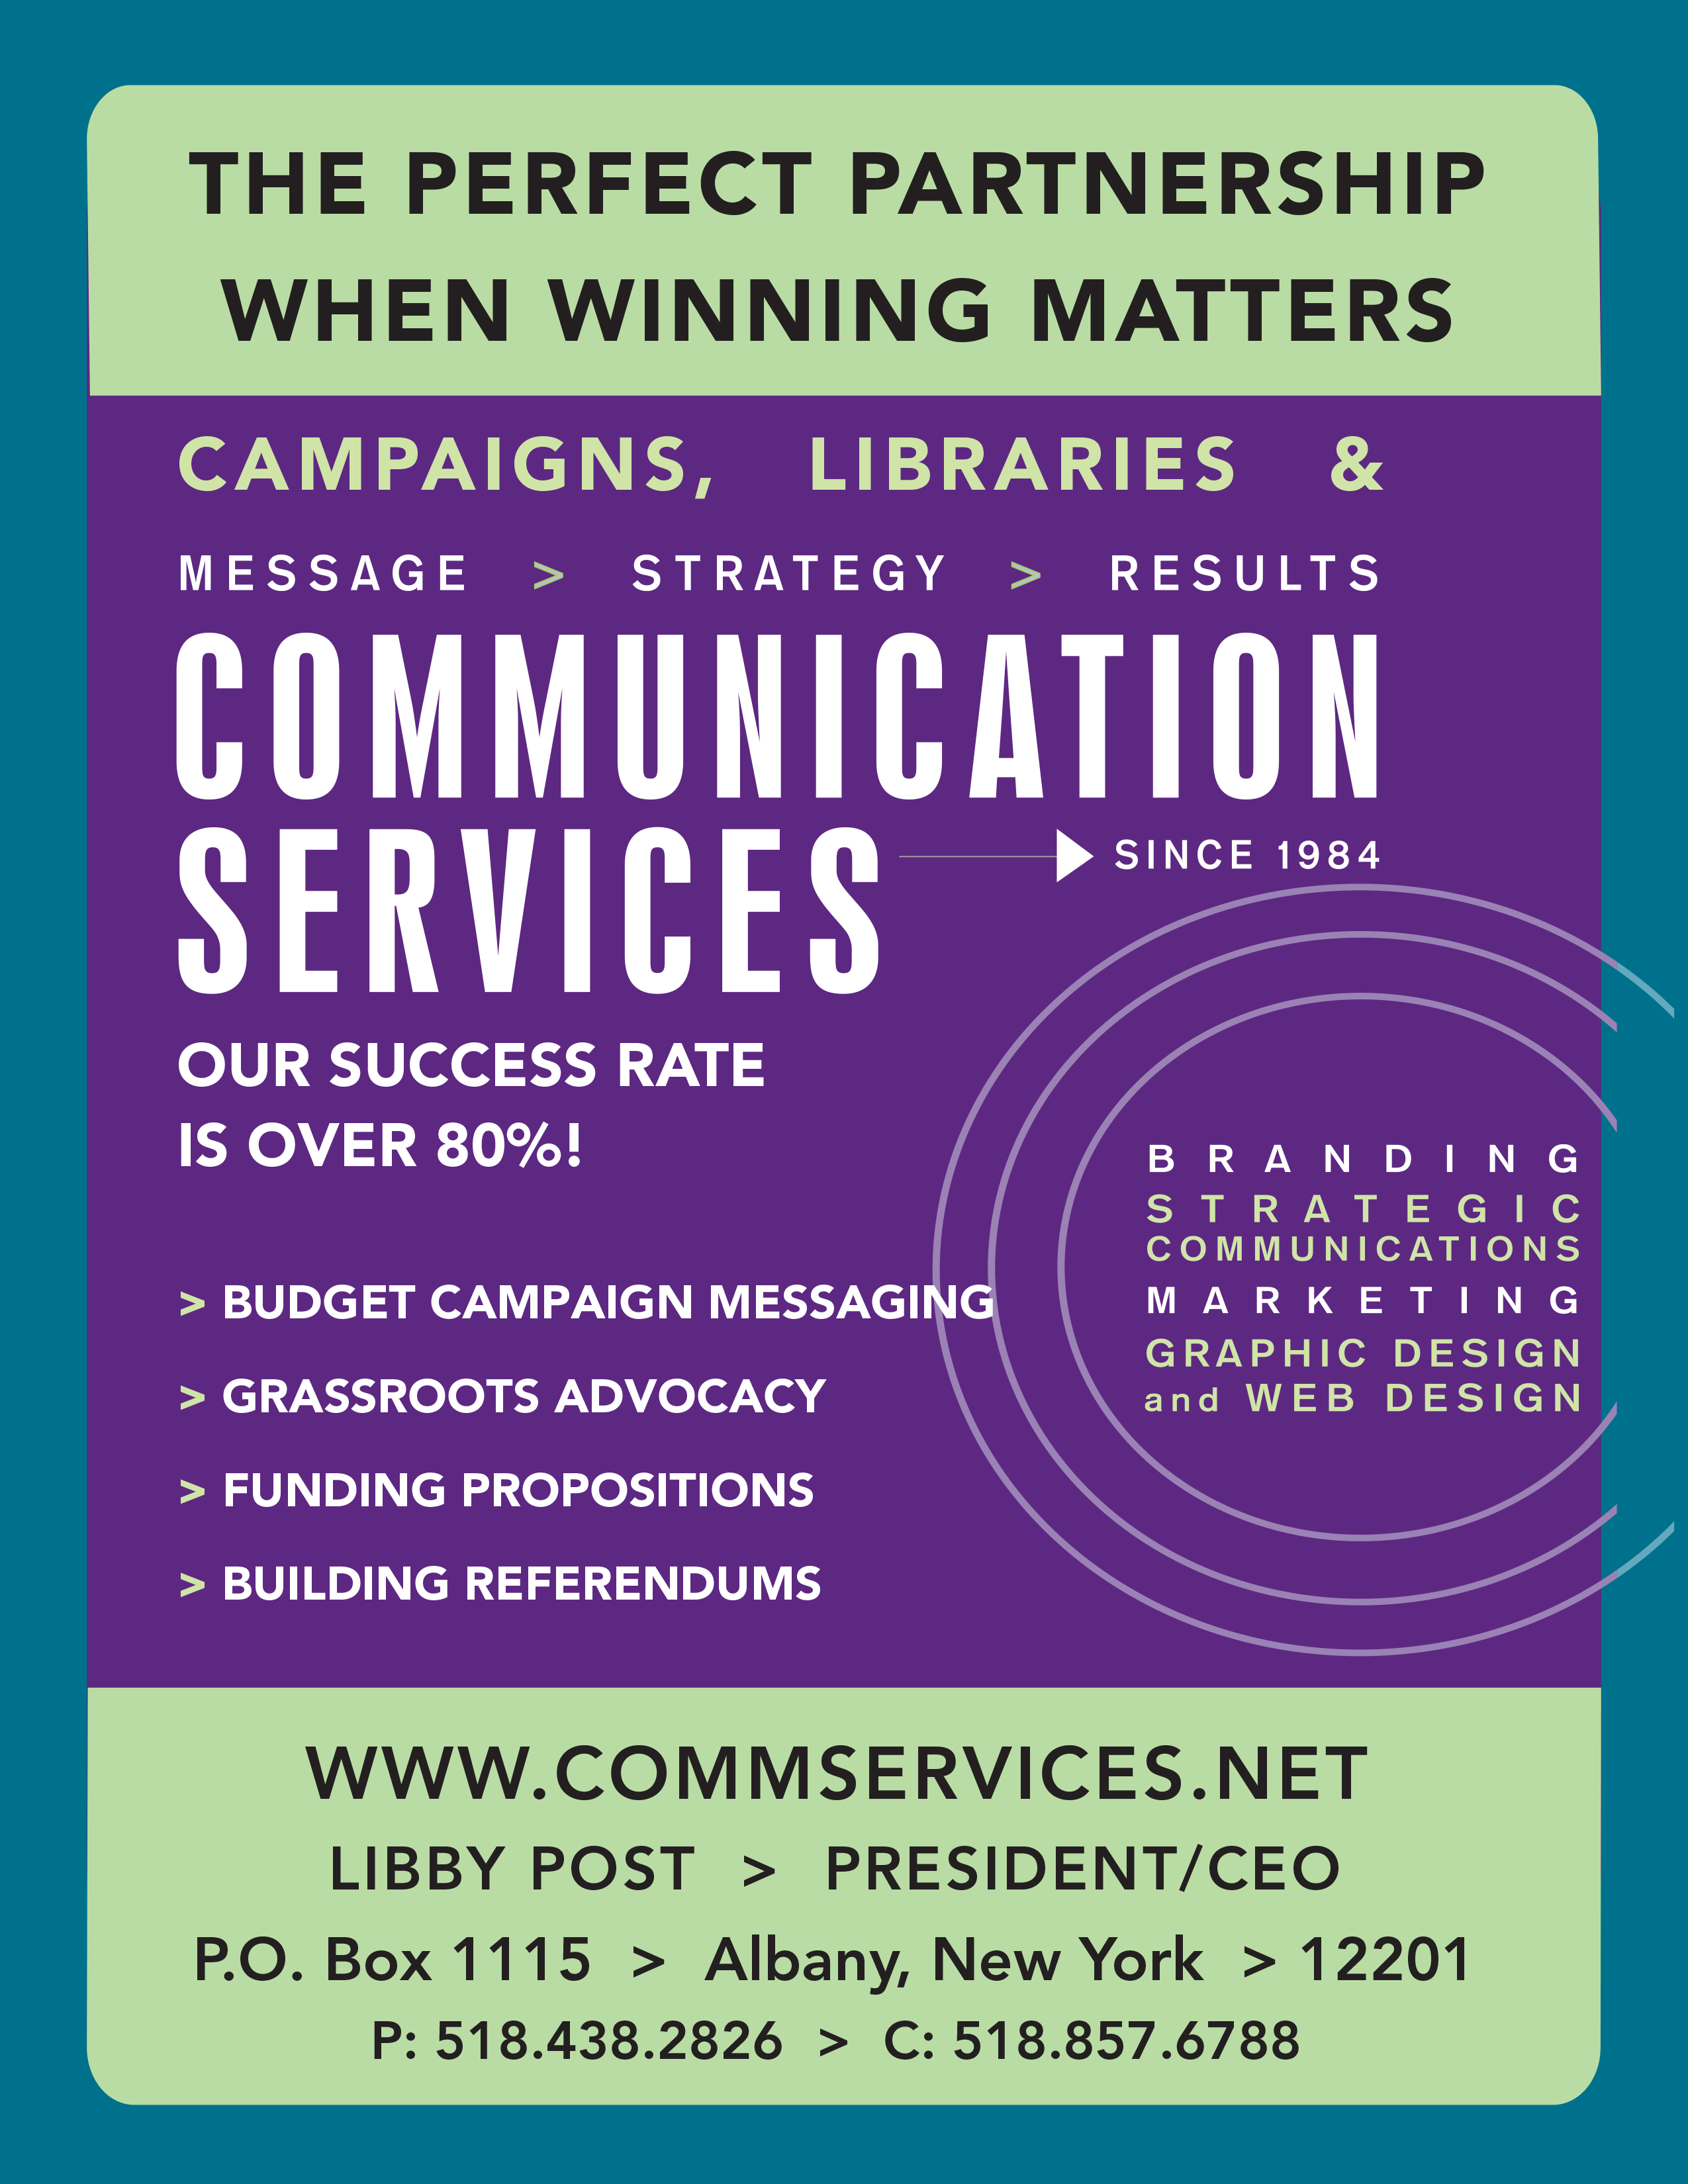 Communication Services premieres White Board Video